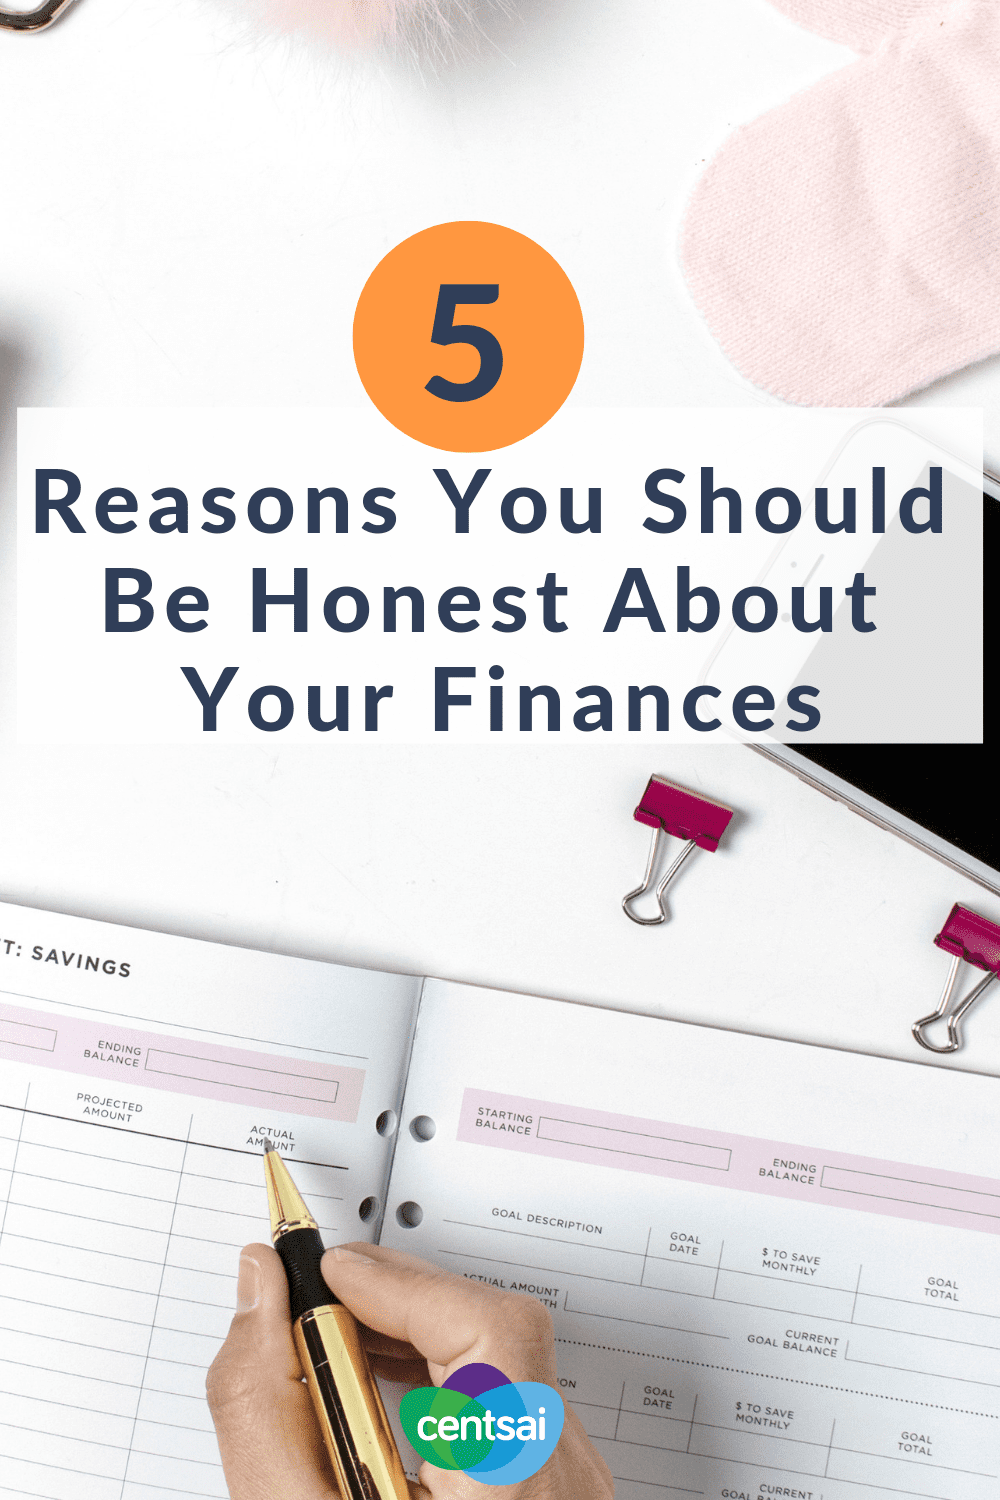 5 Reasons You Should Be Honest About Your Finances. Everybody says it: Don't compare yourself to others. But it's easier said than done. Learn why and how to avoid keeping up with the Joneses. #finances #personalfinance #money #frugaltips